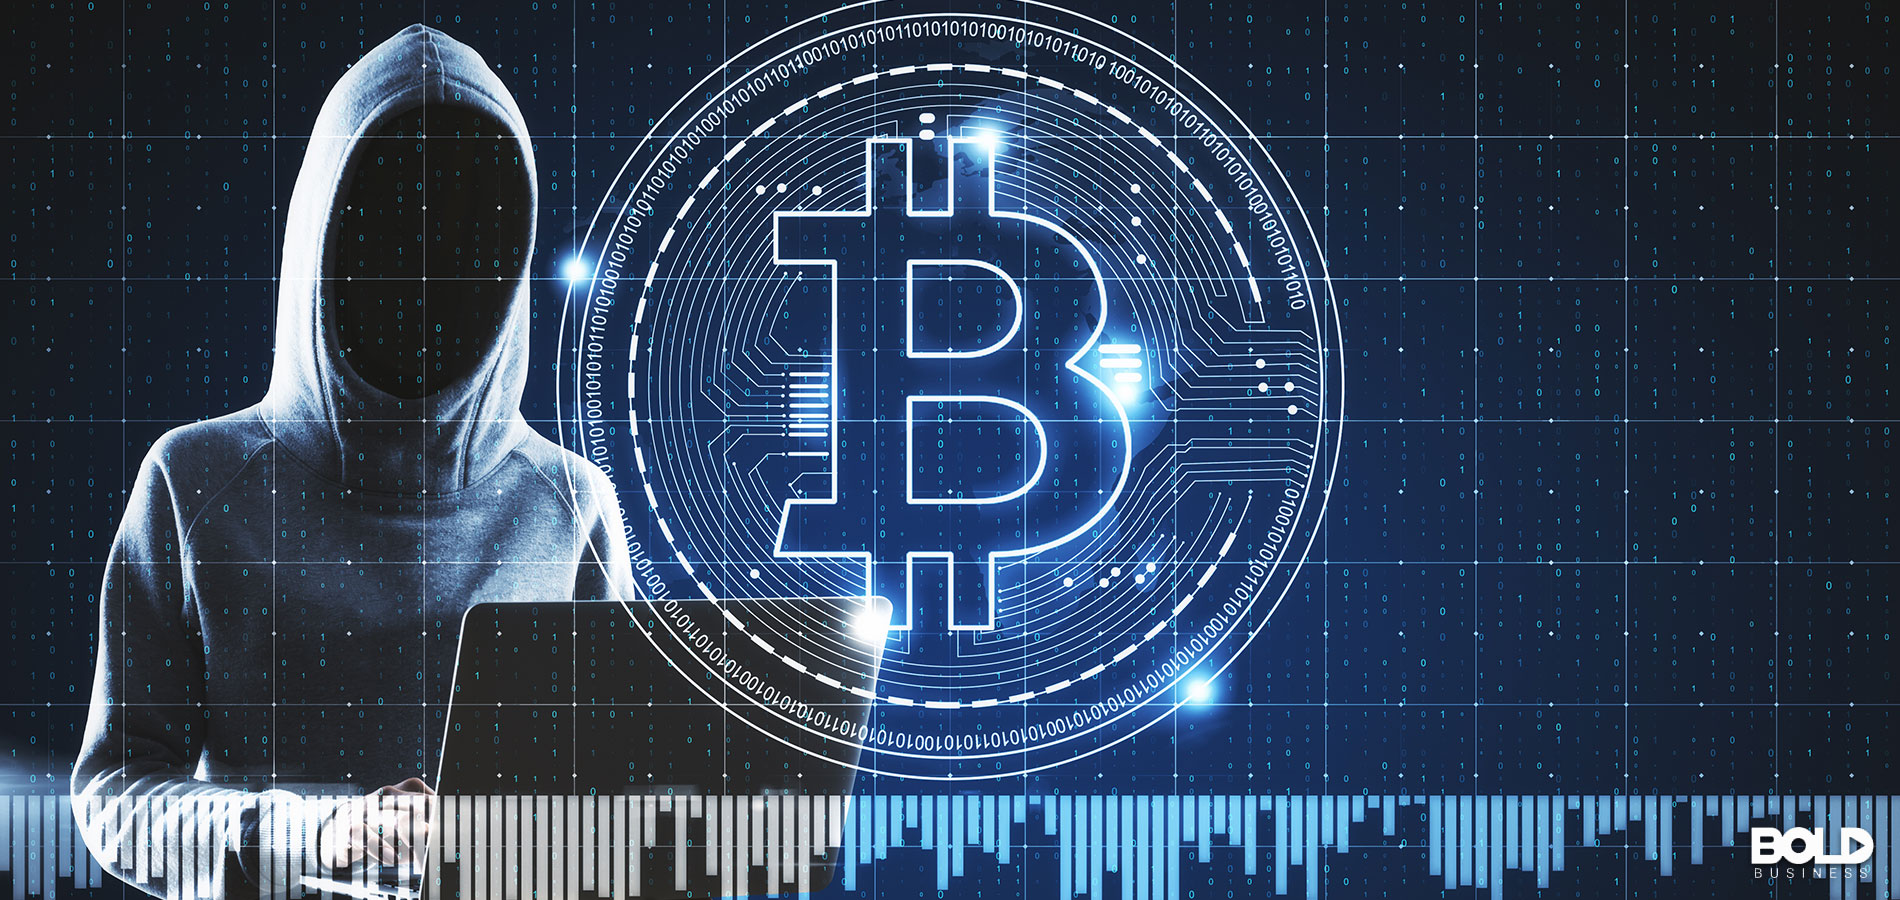 A person in a hoodie investing in Bitcoin